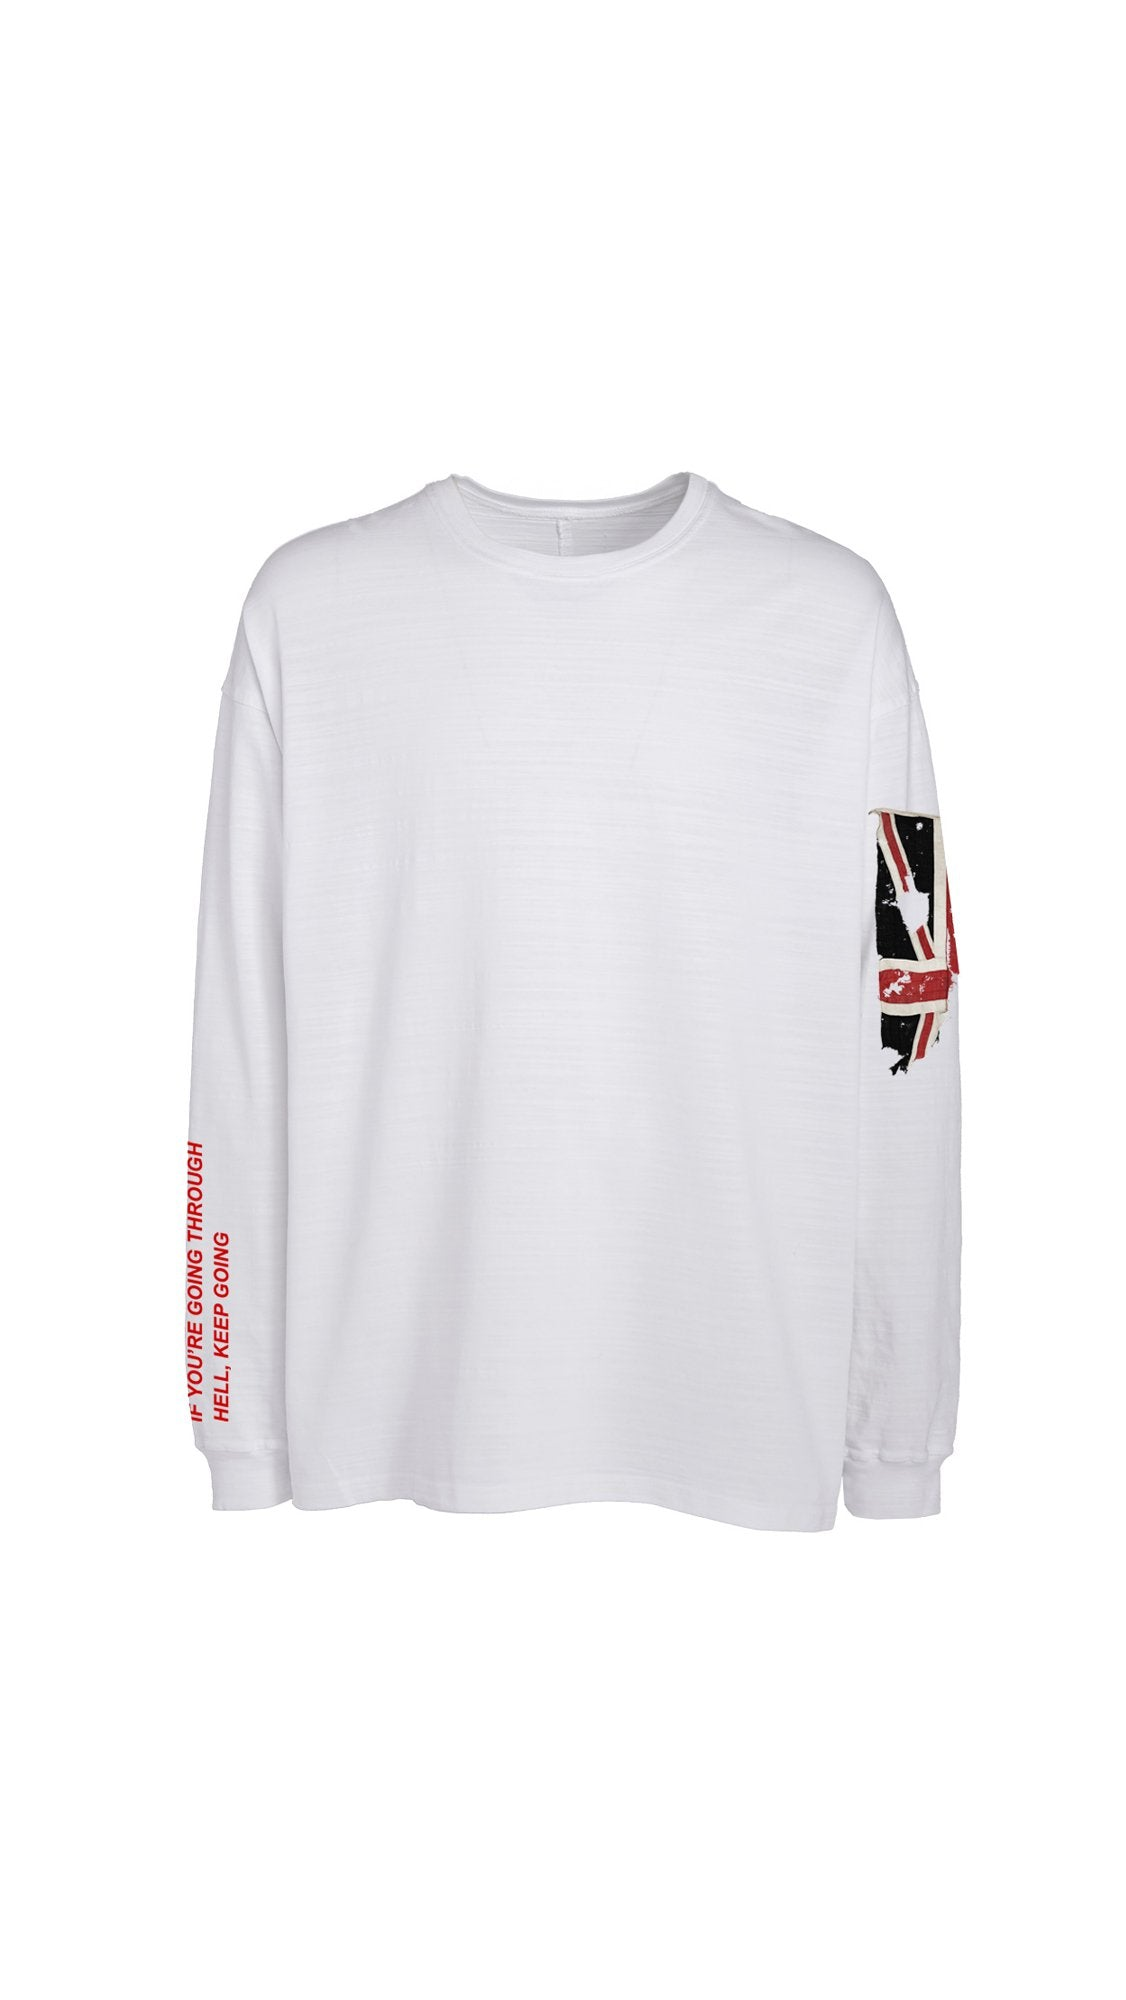 Hell Long Sleeve T-shirt - White